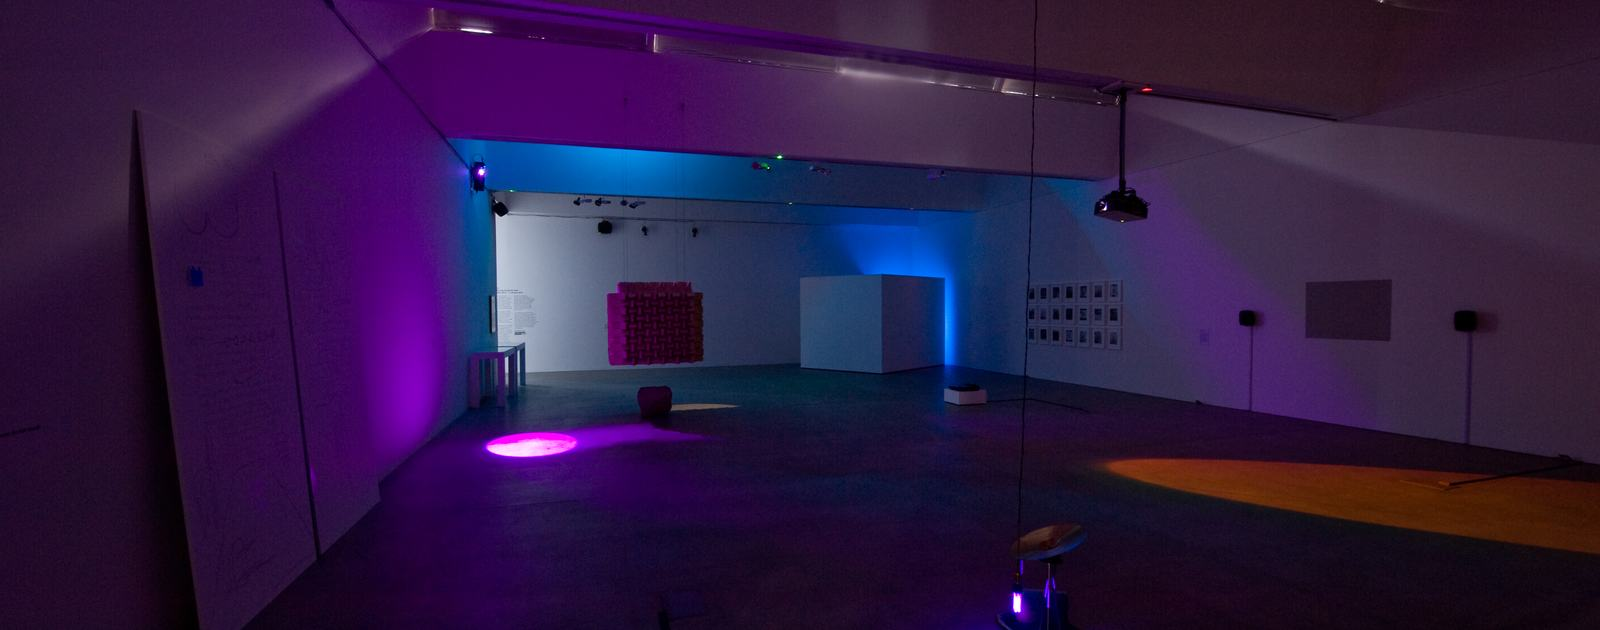 Listening (installation view), Hayward Touring Curatorial Open, curated by Sam Belinfante, BALTIC's project space at BALTIC 39, Newcastle upon Tyne, 2014. Image courtesy BALTIC Centre for Contemporary Art. Photo: Colin Davison.